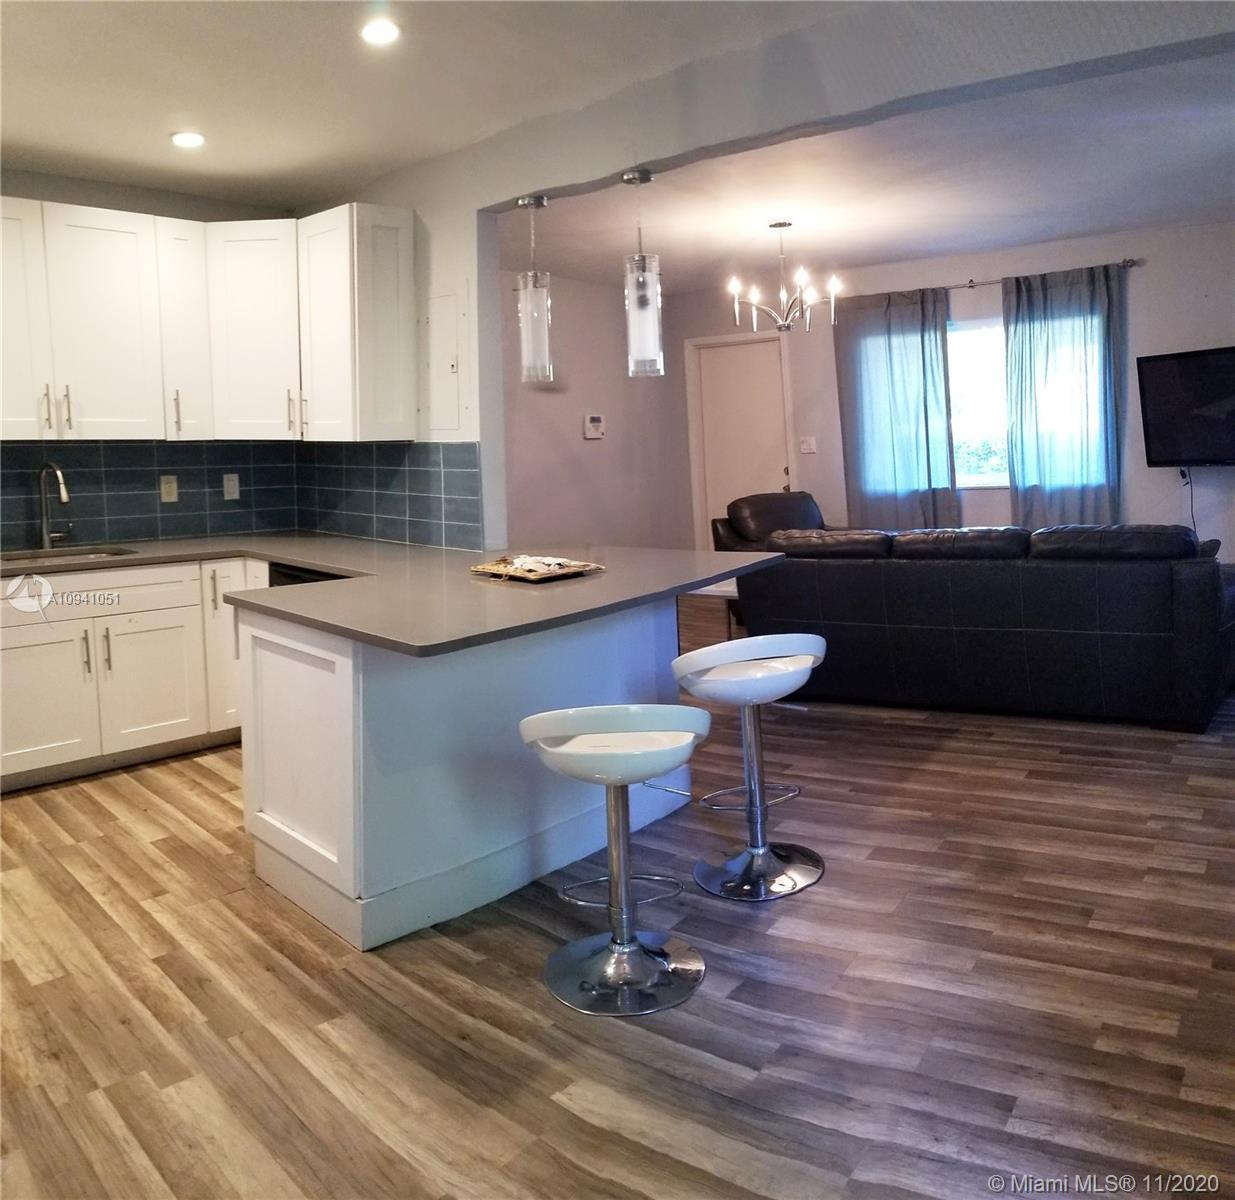 This Mid Century modern house has a great vibe!  Updated 3/2, beautiful kitchen with quartz counter